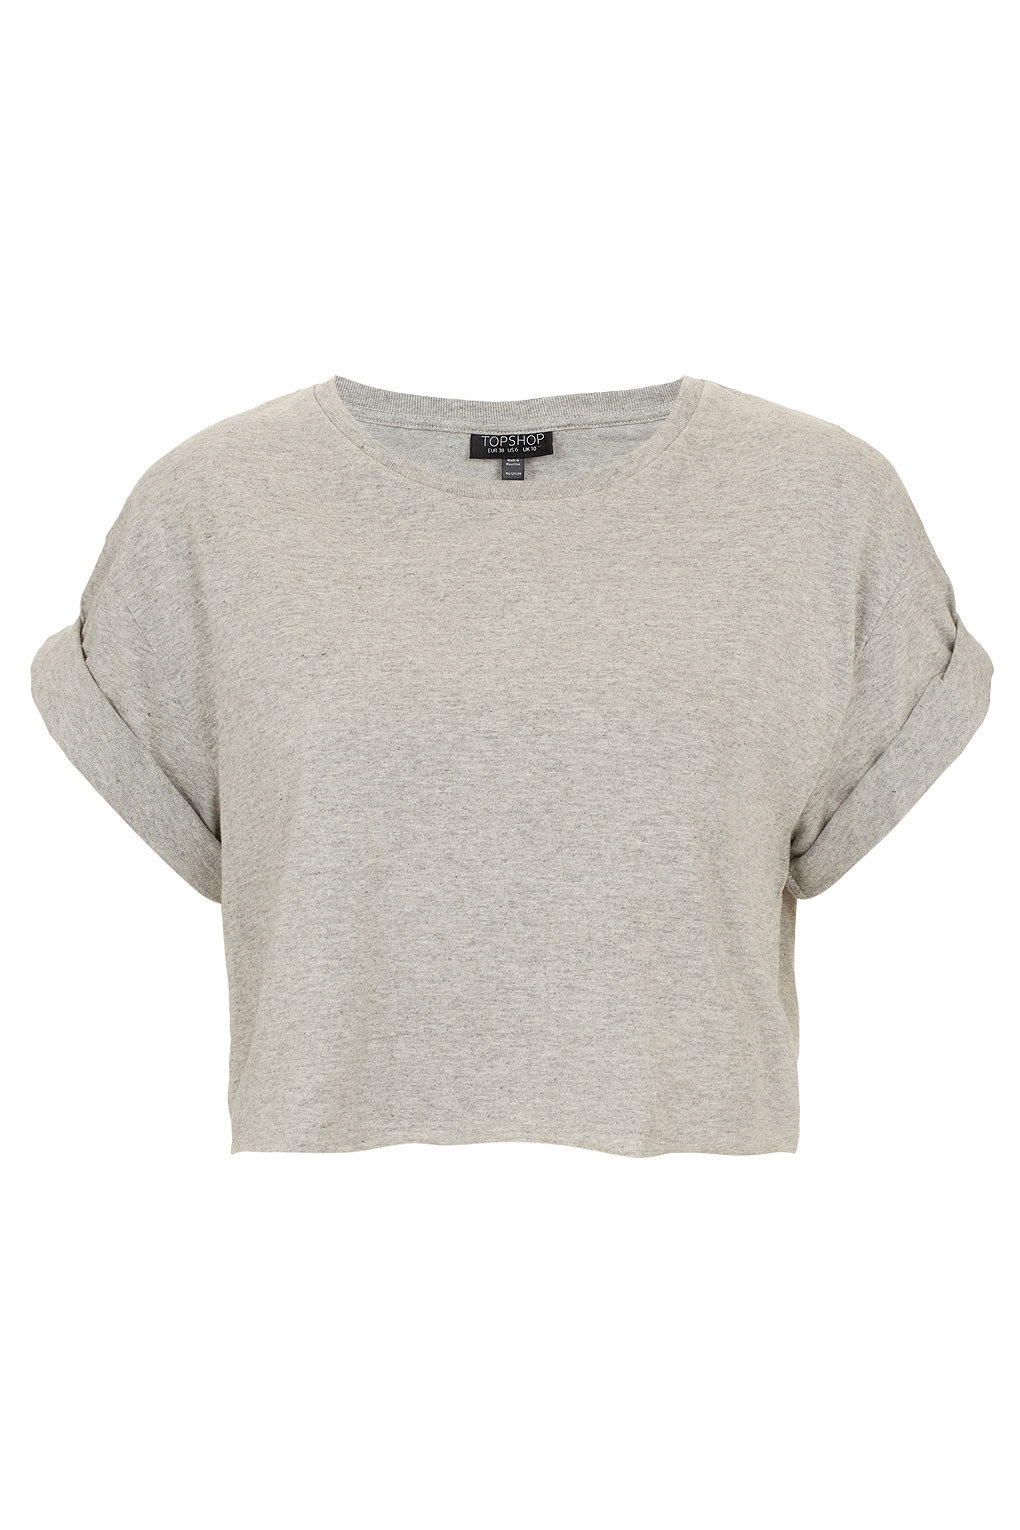 Roll Back Crop Tee Jersey Tops From Topshop